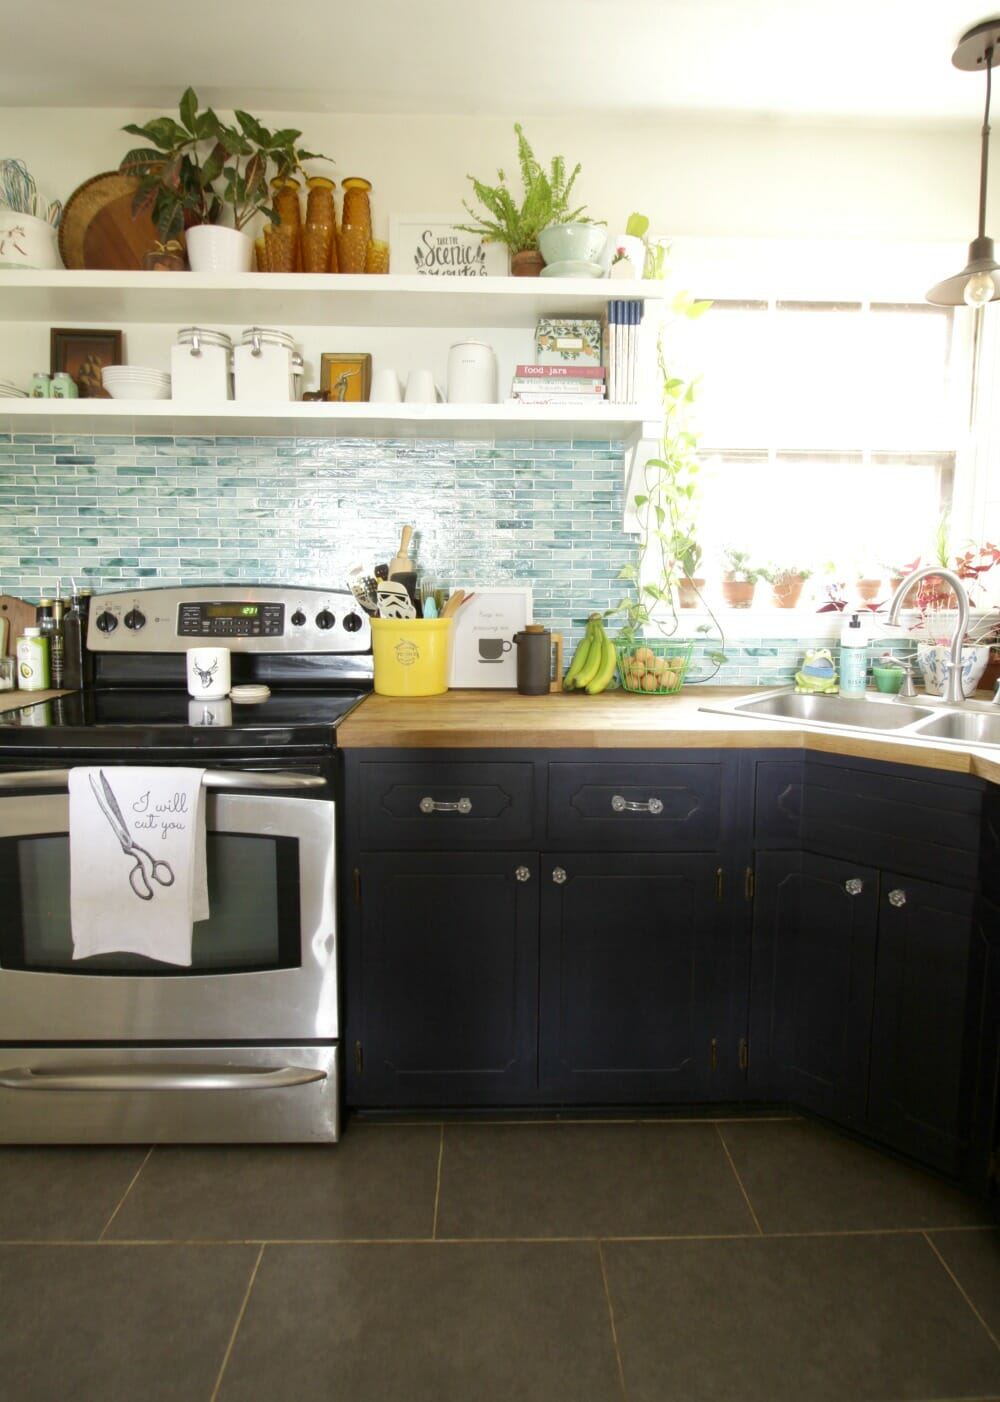 Kitchen Updates: New Hardware & Stools For A Modern